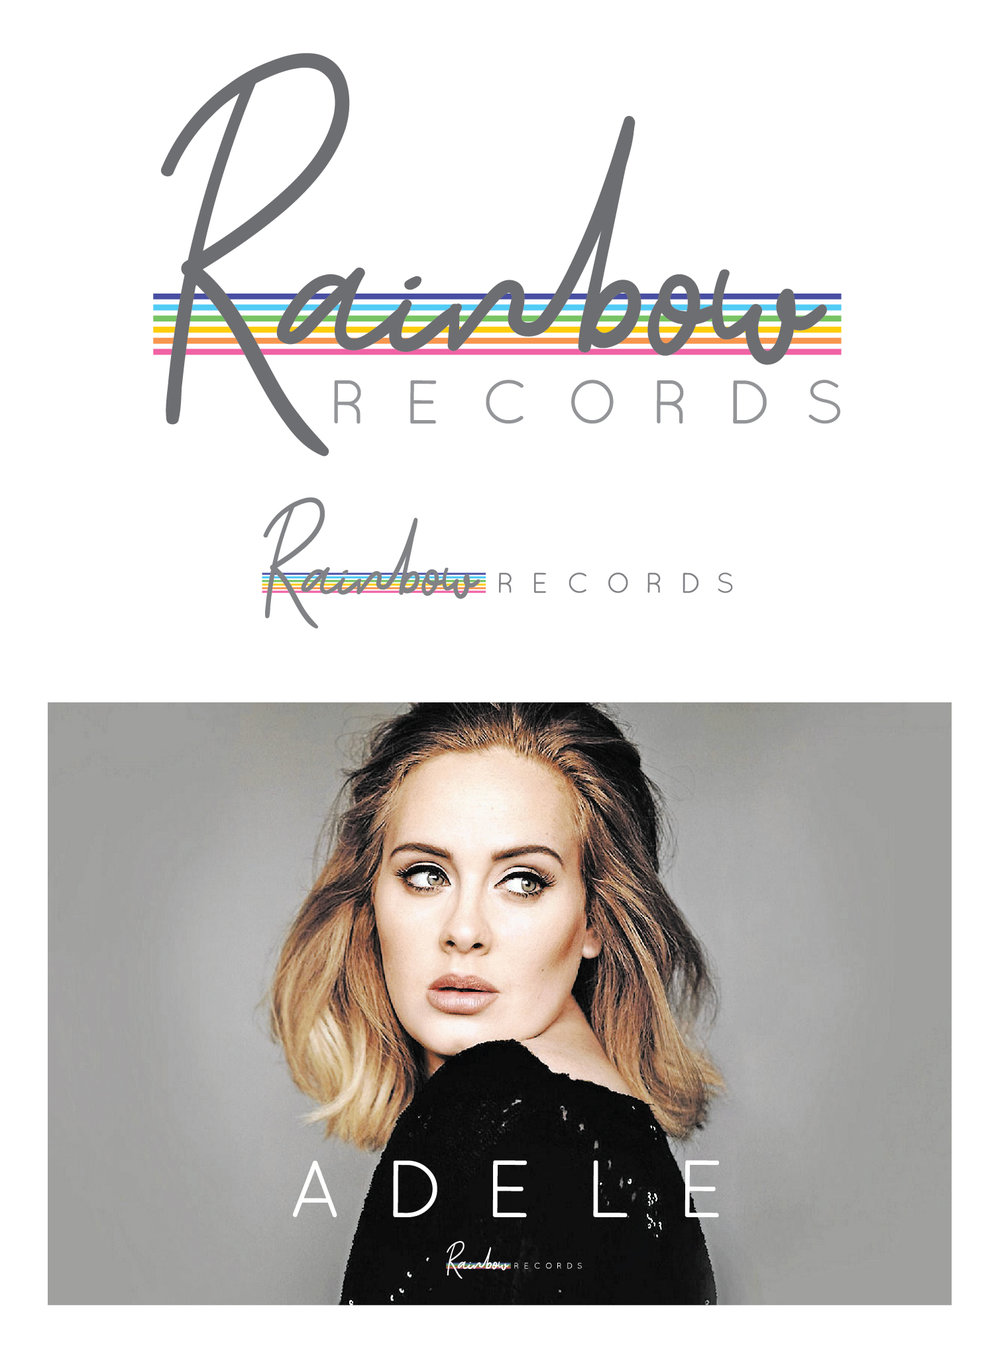 Rainbow_Records.jpg